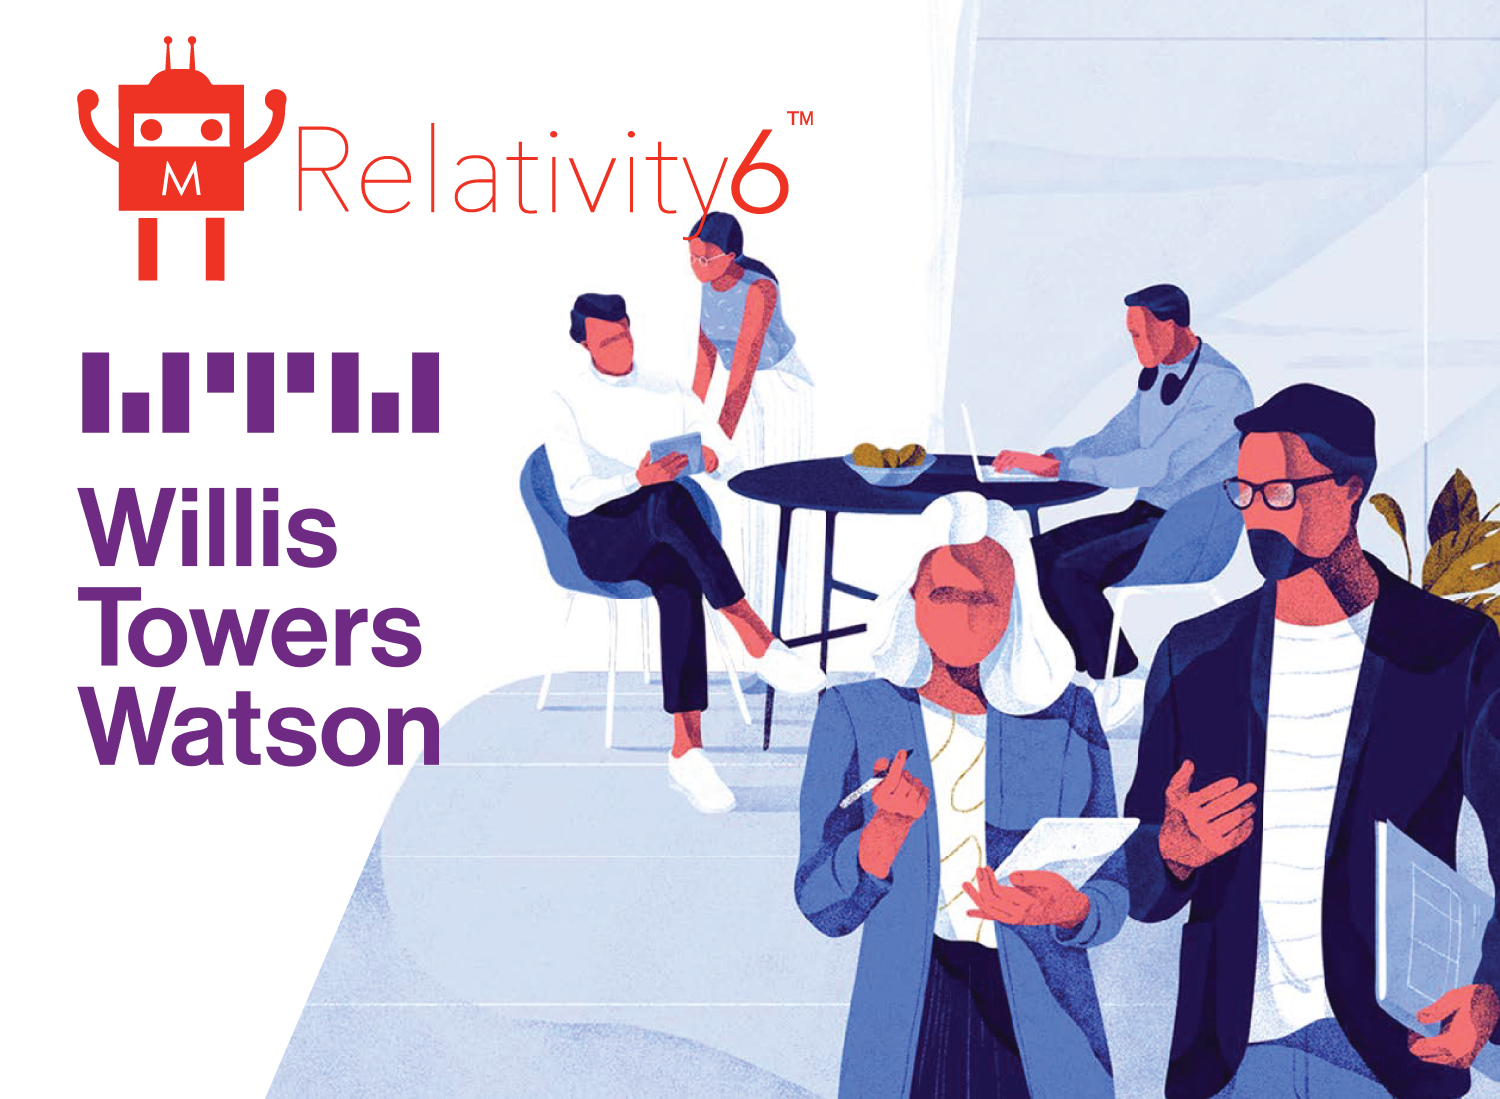 Using Relativity6 Technology, WTW Reduced churn and increased number of products purchased per client, WTW expects annual 5% growth in client retention and double digit growth in new business conversion for the business unit.